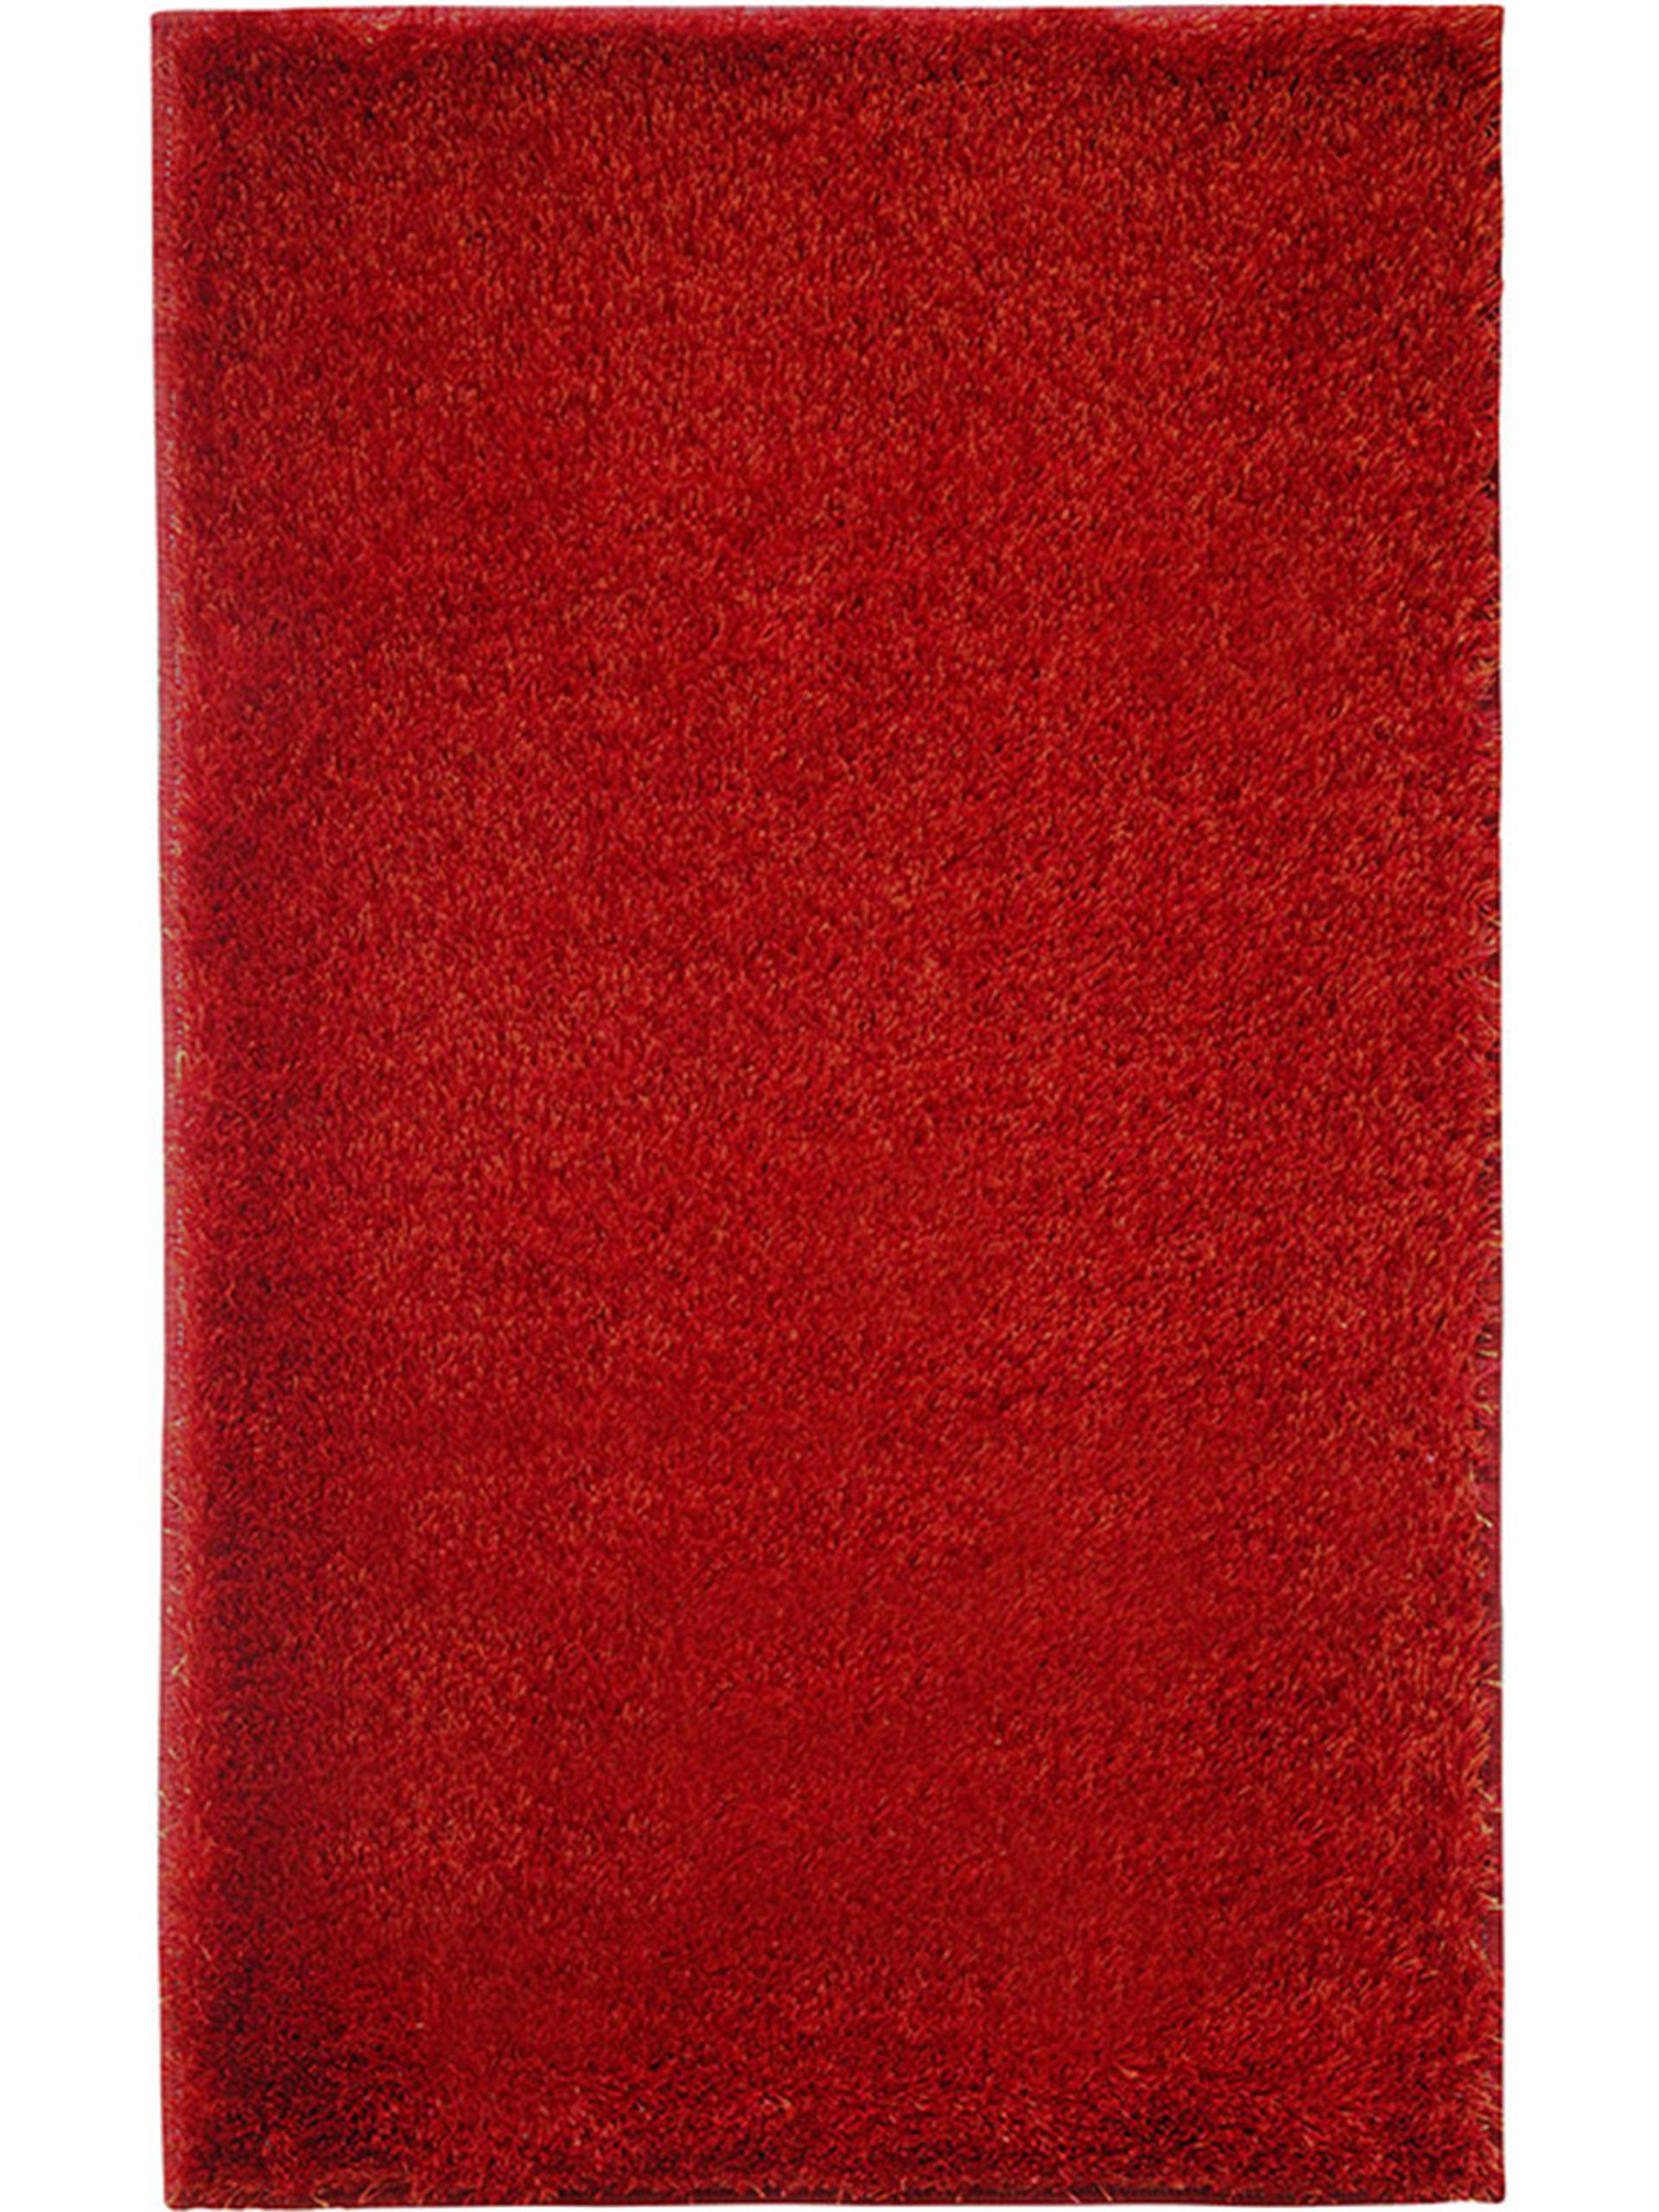 esprit c tapis de bain chill rouge 60x100 cm. Black Bedroom Furniture Sets. Home Design Ideas